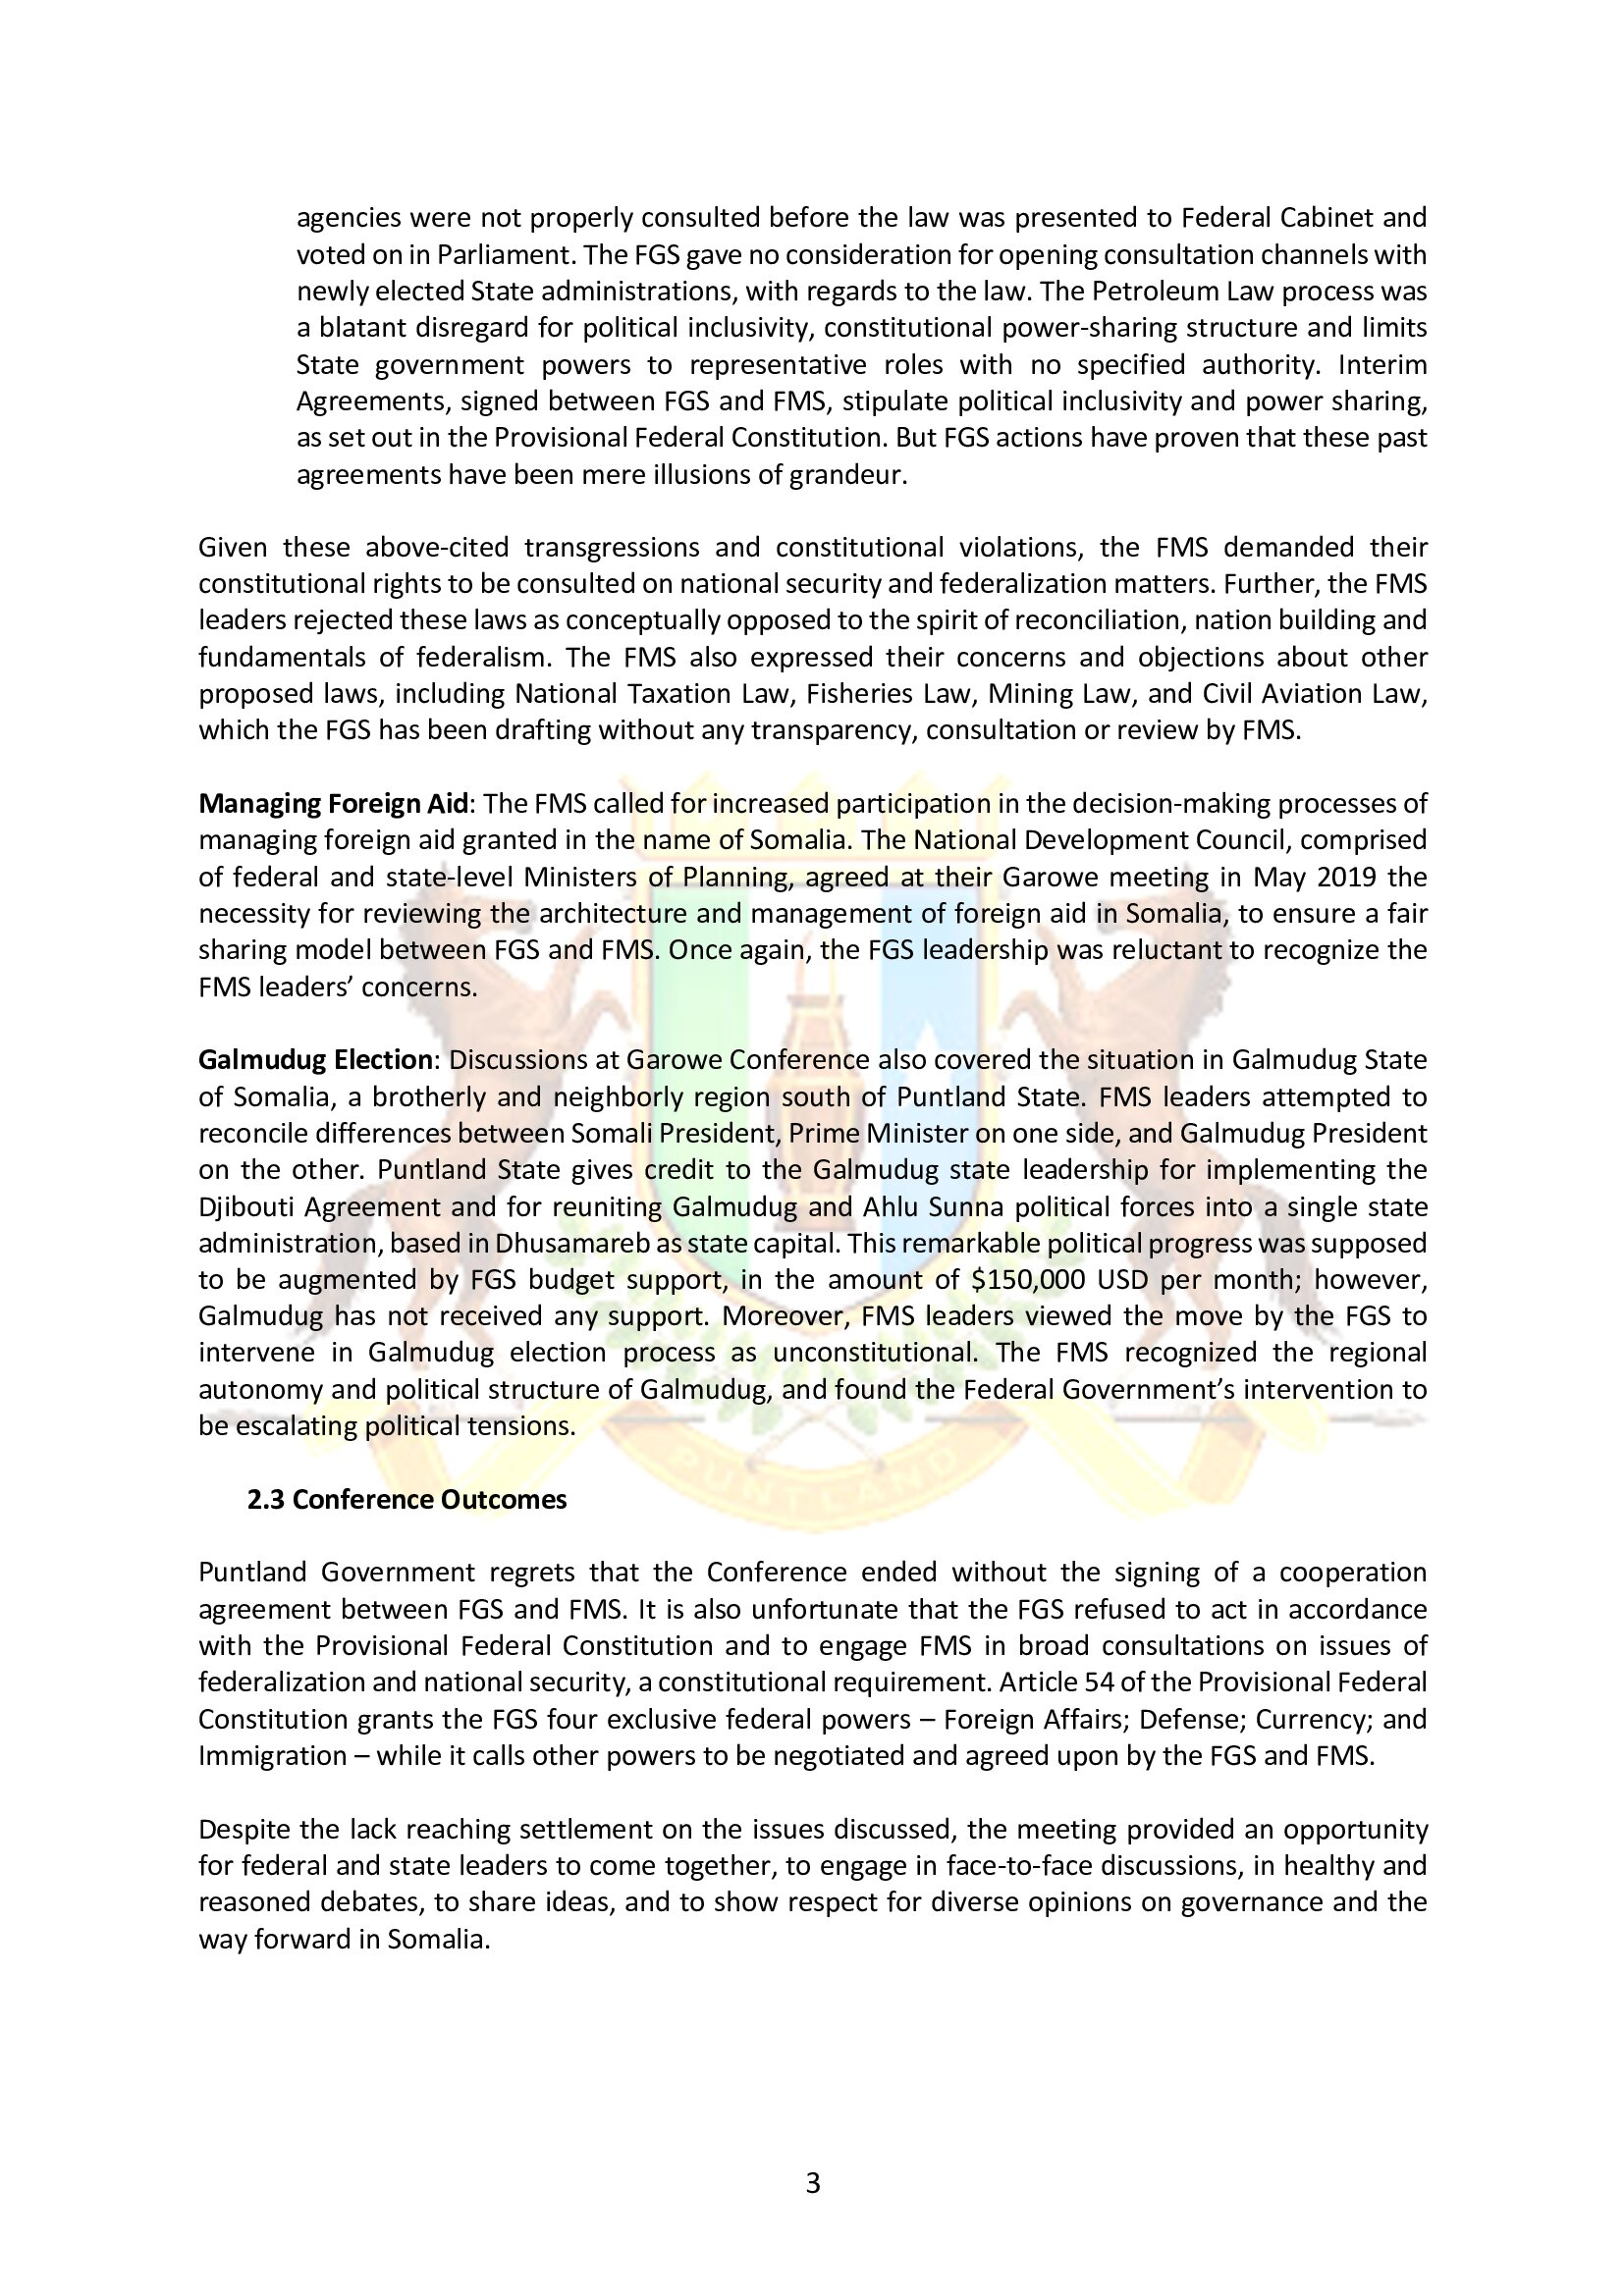 3. Puntland Position paper on Garowe conference_5-11 May 2019_002